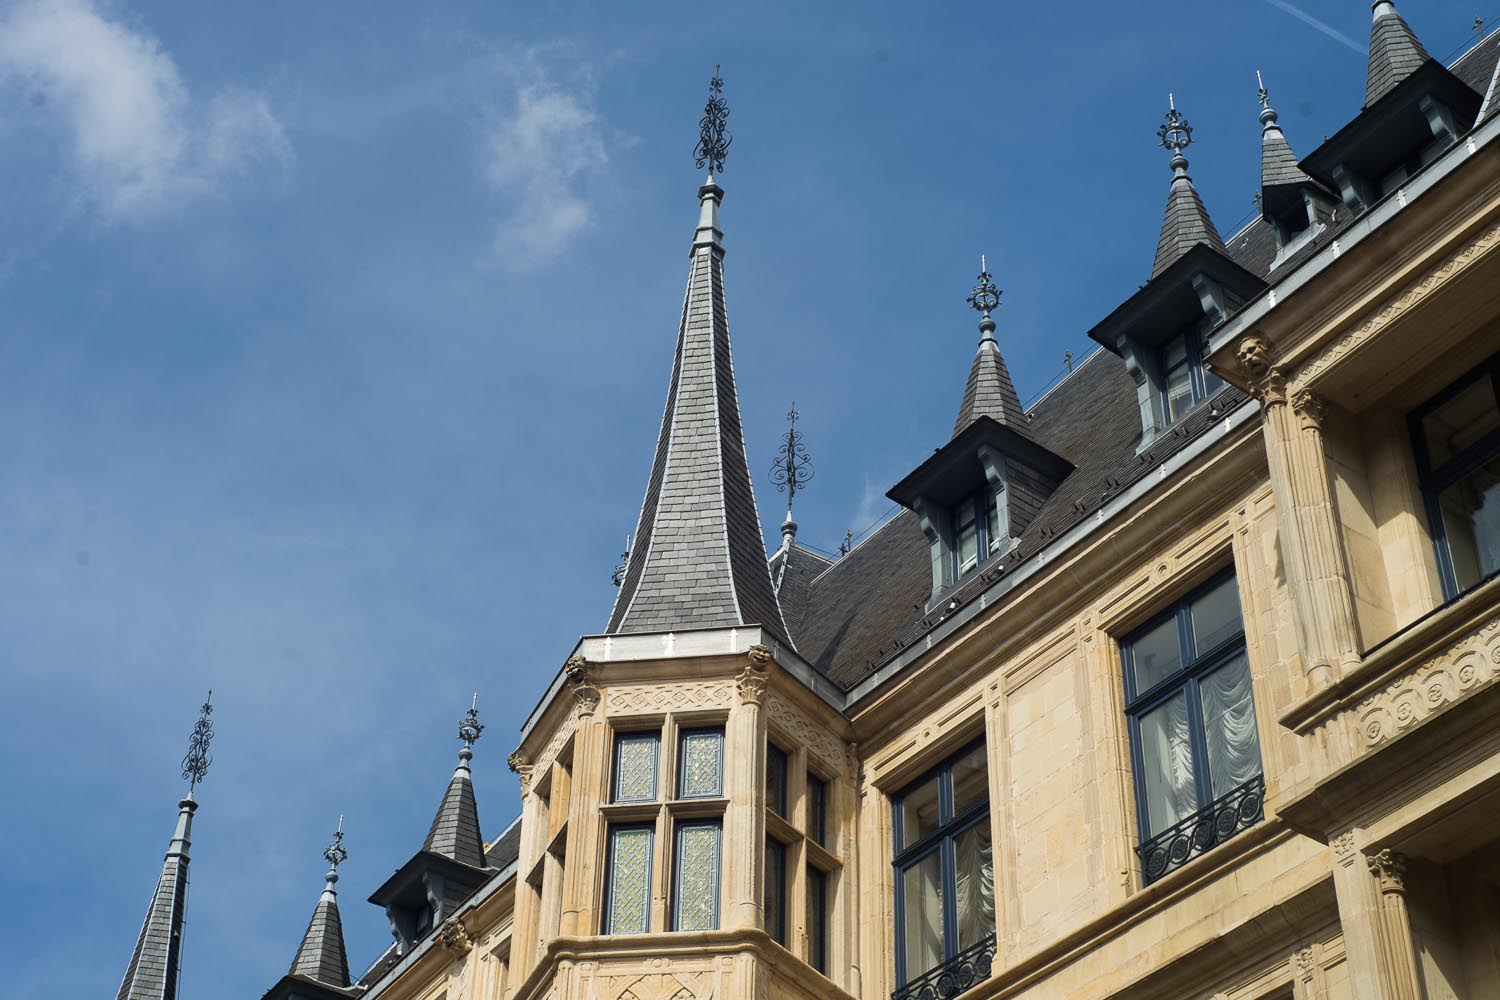 Luxembourg - palais grand ducal